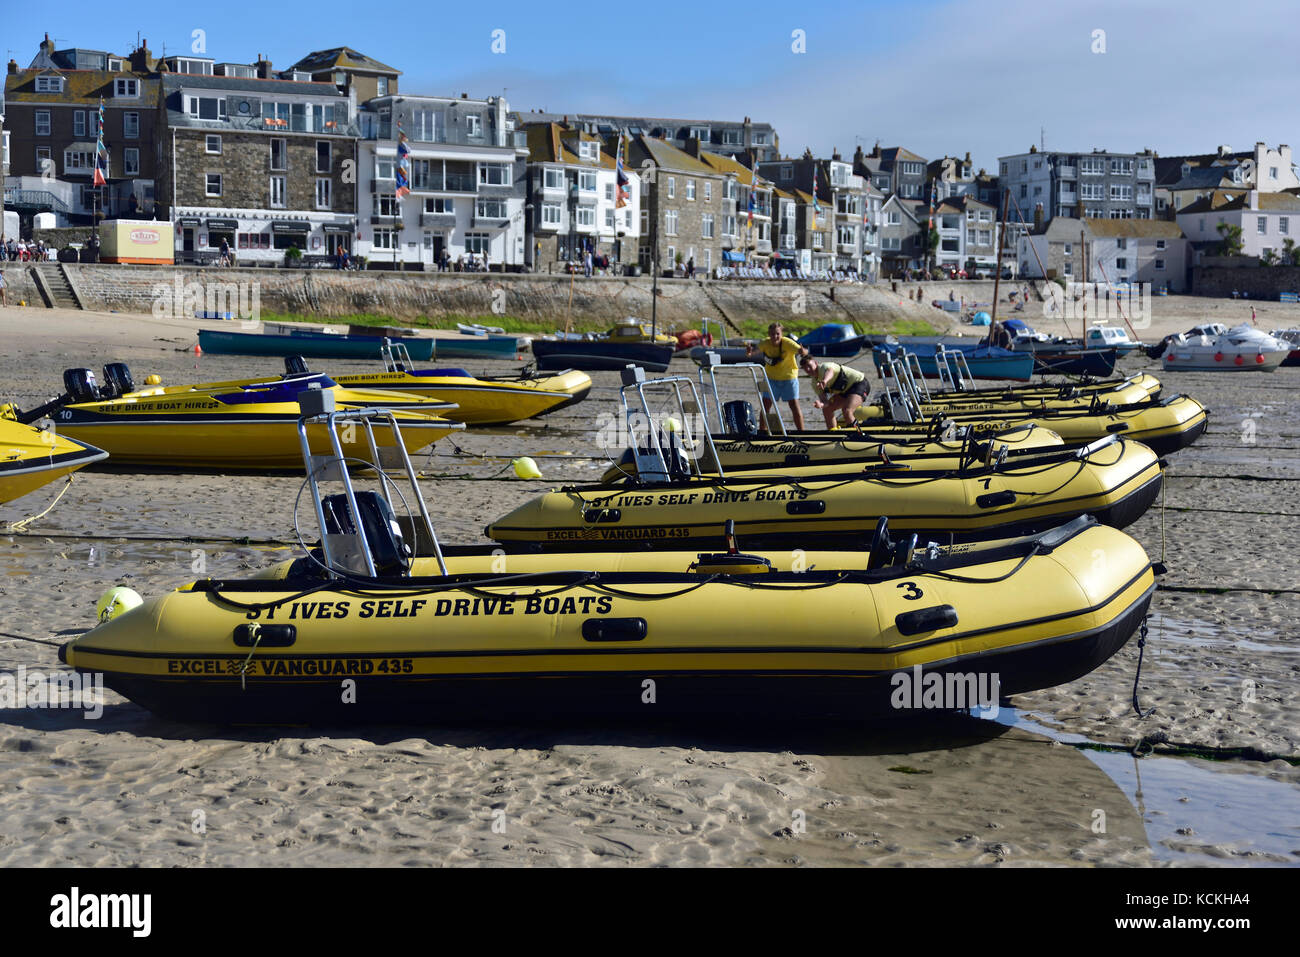 A line of self-drive boats, St Ives, Cornwall - Stock Image